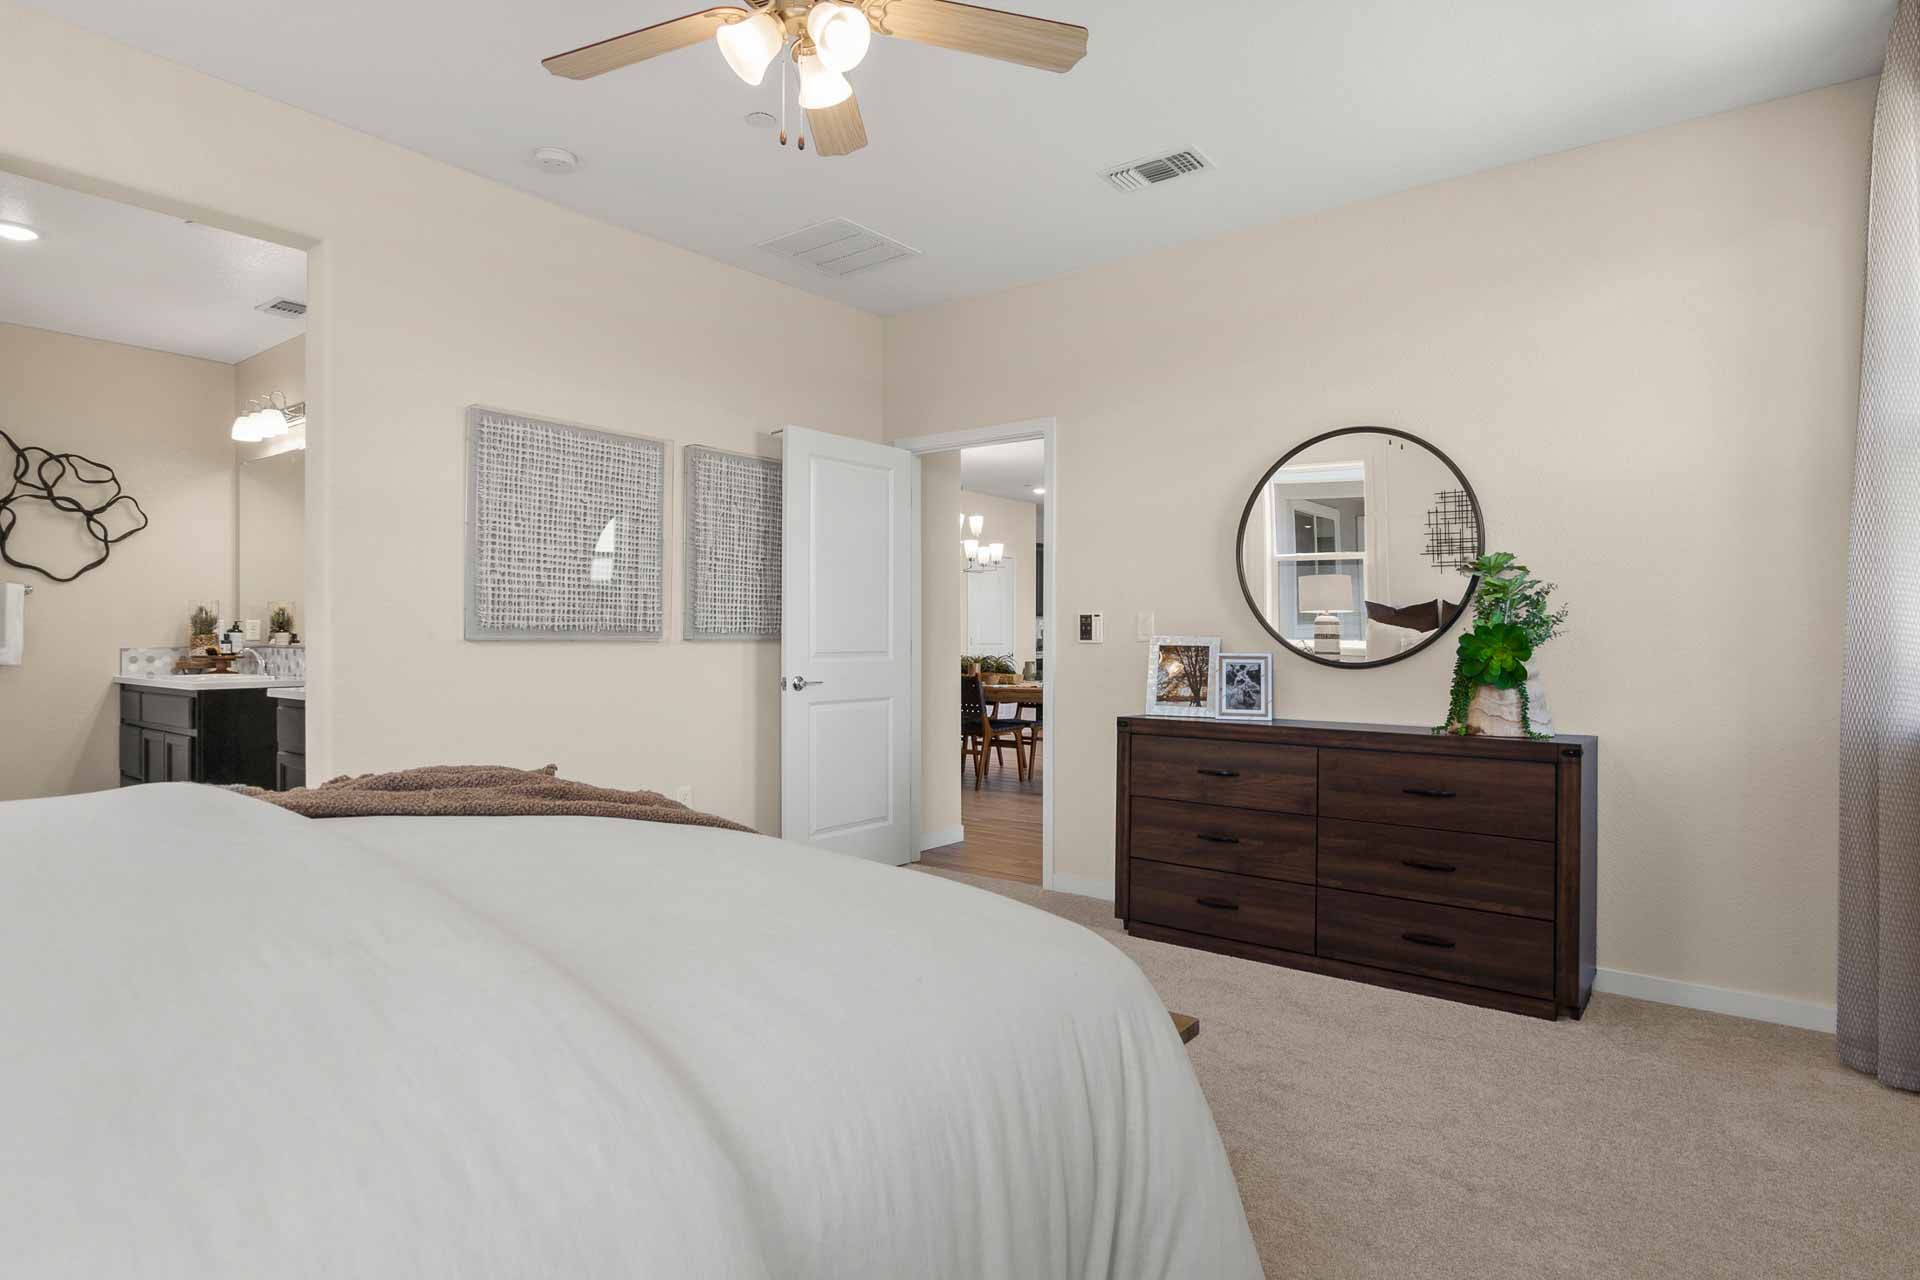 Bedroom featured in the Residence 3 By Carson Homes in Vallejo-Napa, CA